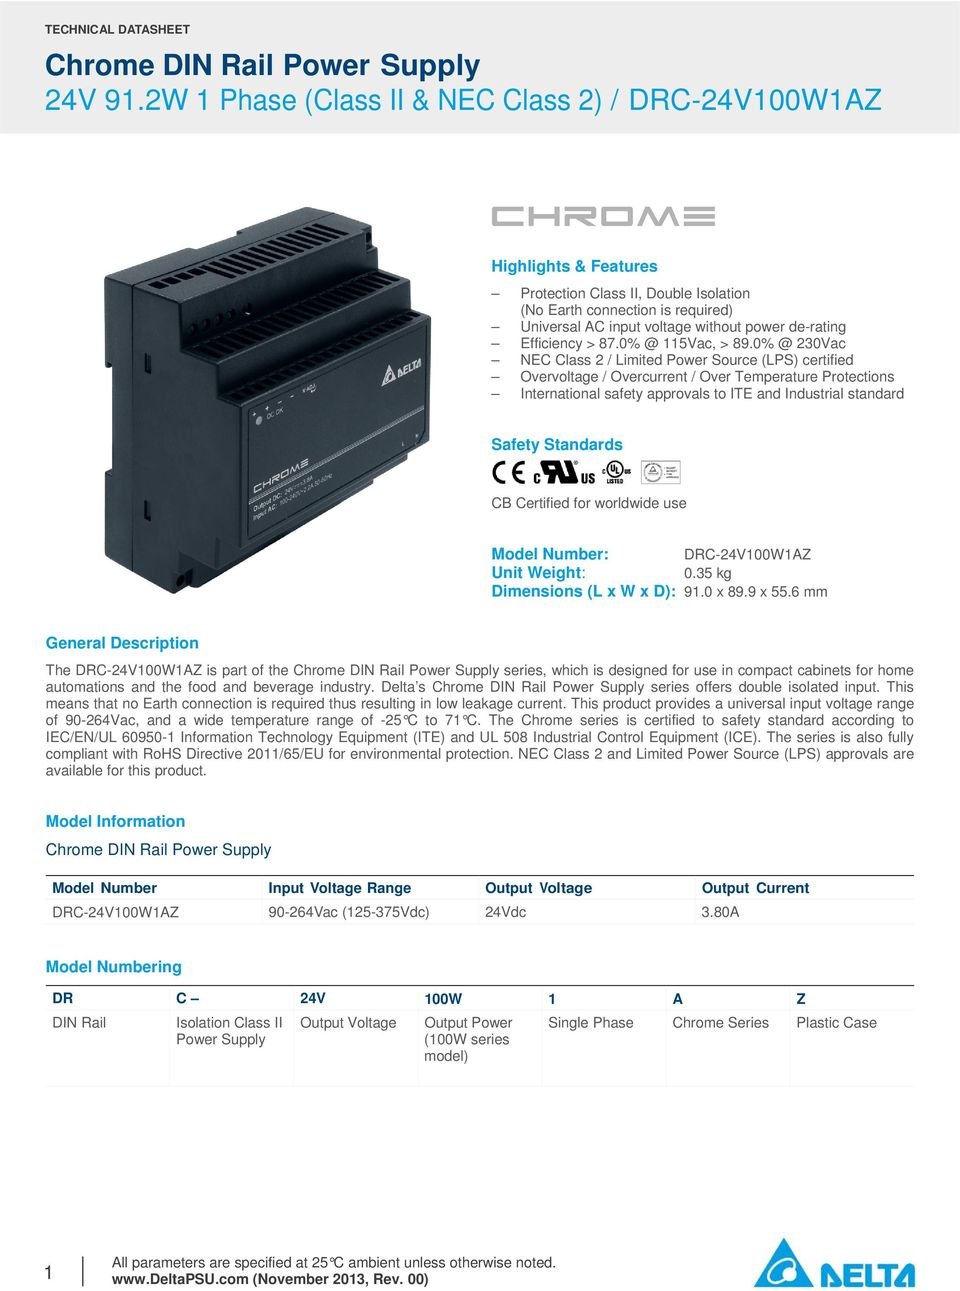 CB Certified for worldwide use Model Number: DRC-24V100W1AZ Unit Weight: 0.35 kg Dimensions (L x W x D): 91.0 x 89.9 x 55.